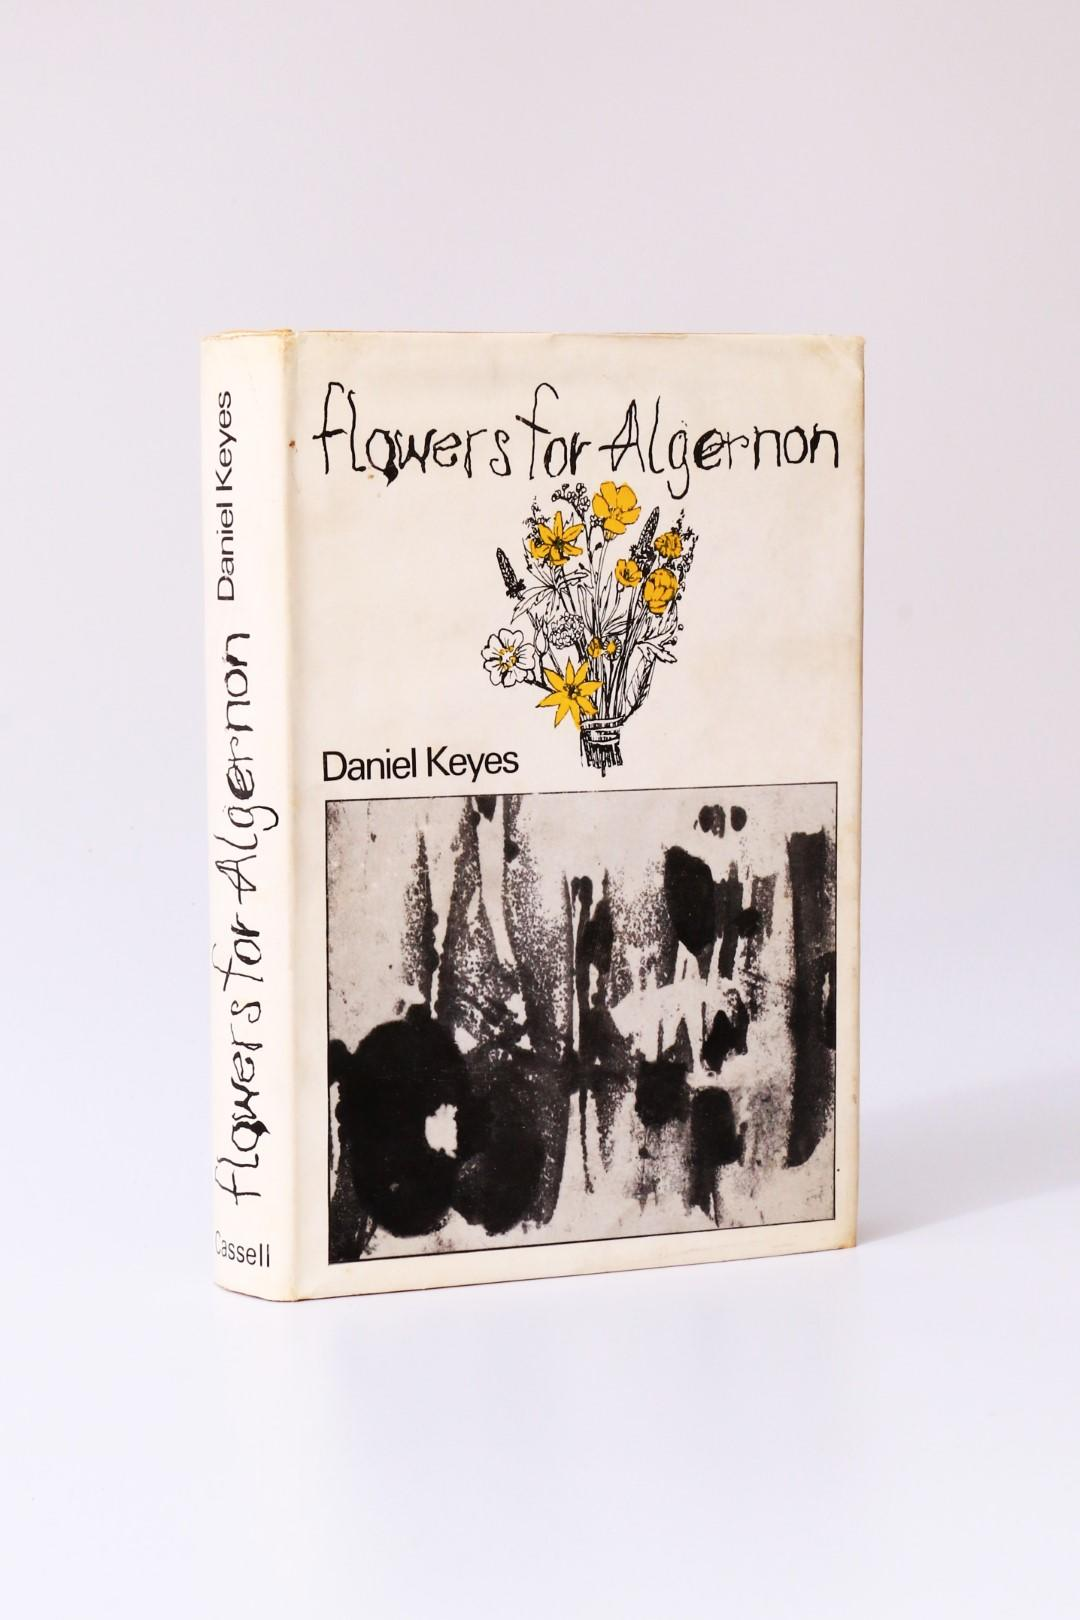 Daniel Keyes - Flowers for Algernon - Cassell, 1966, First Edition.